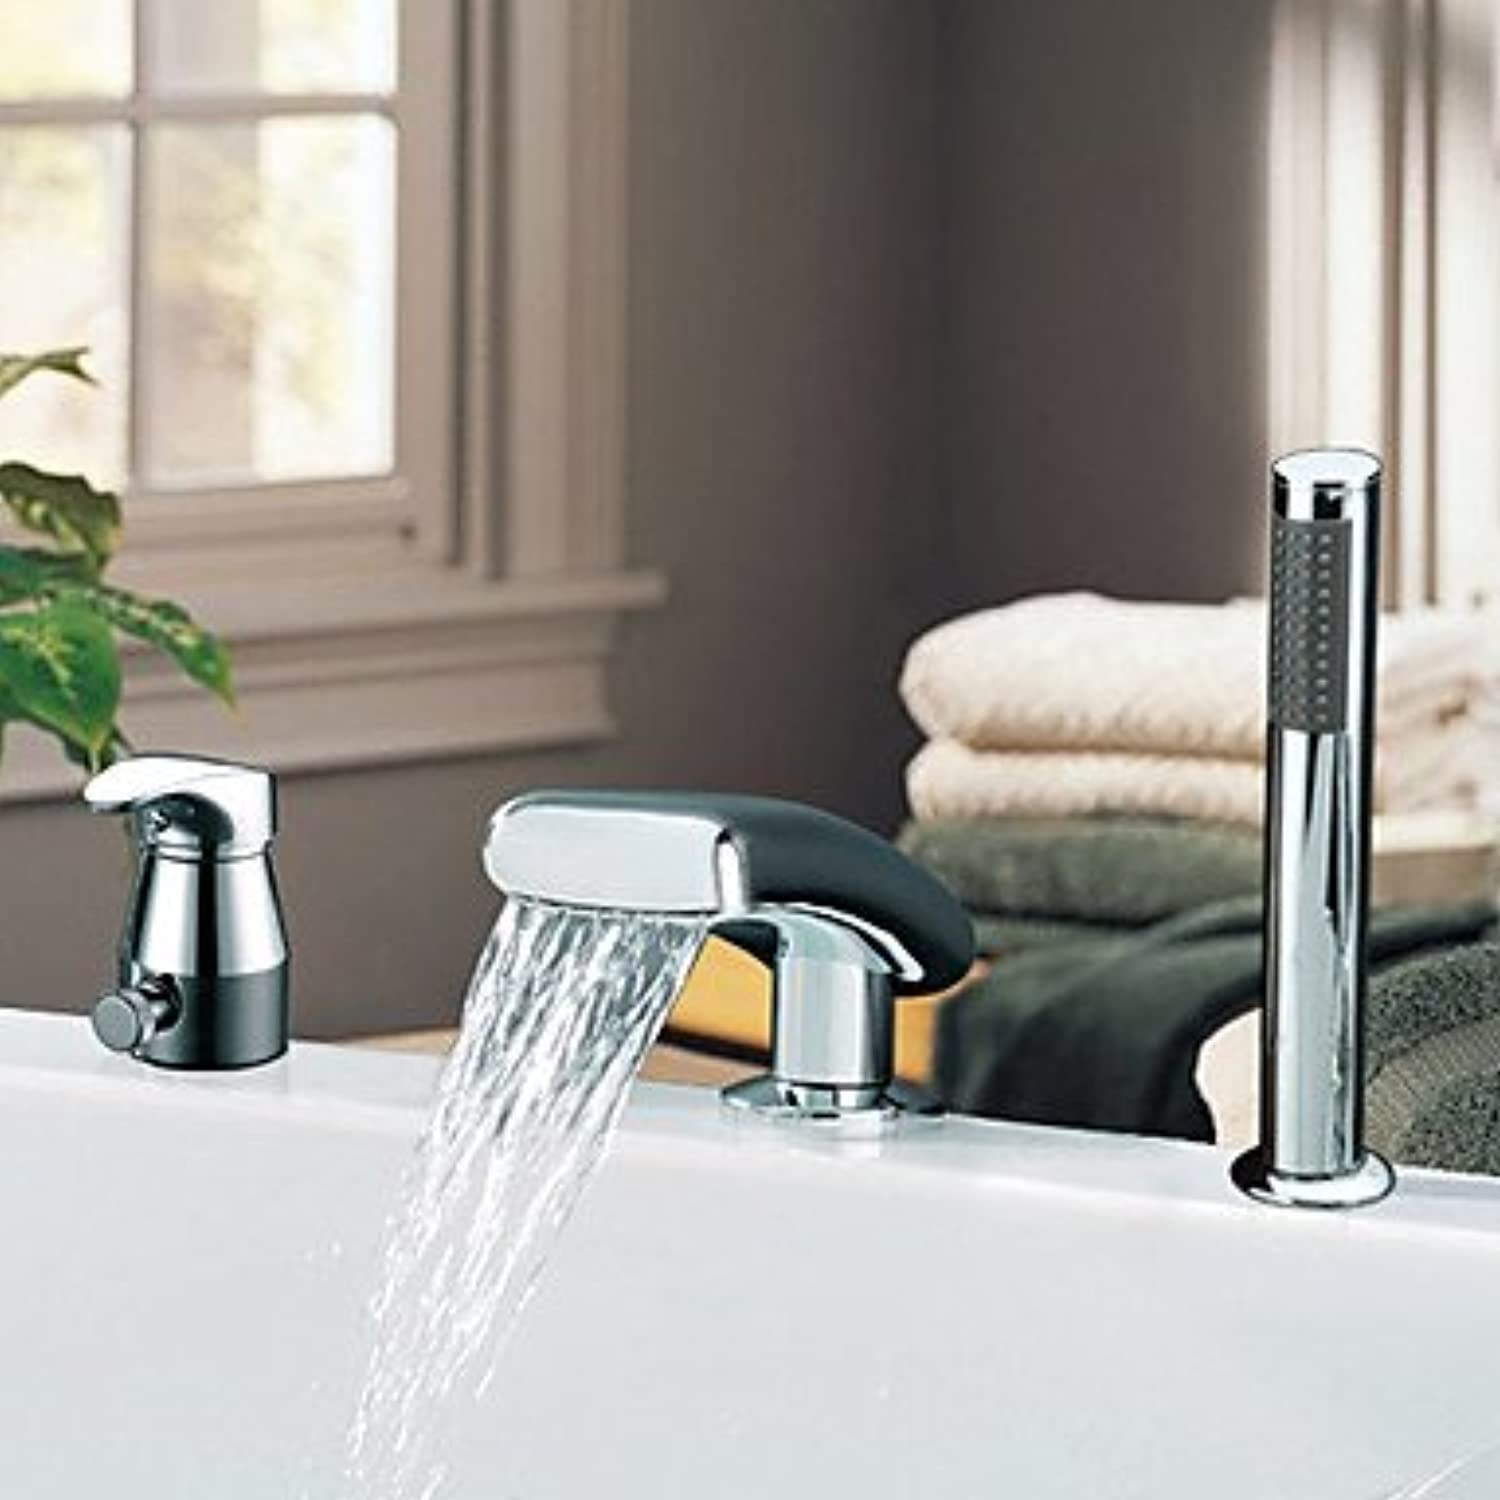 Waterfall Chrome Finish Contemporary Widespread Two Handles With Handshower Tub Faucet